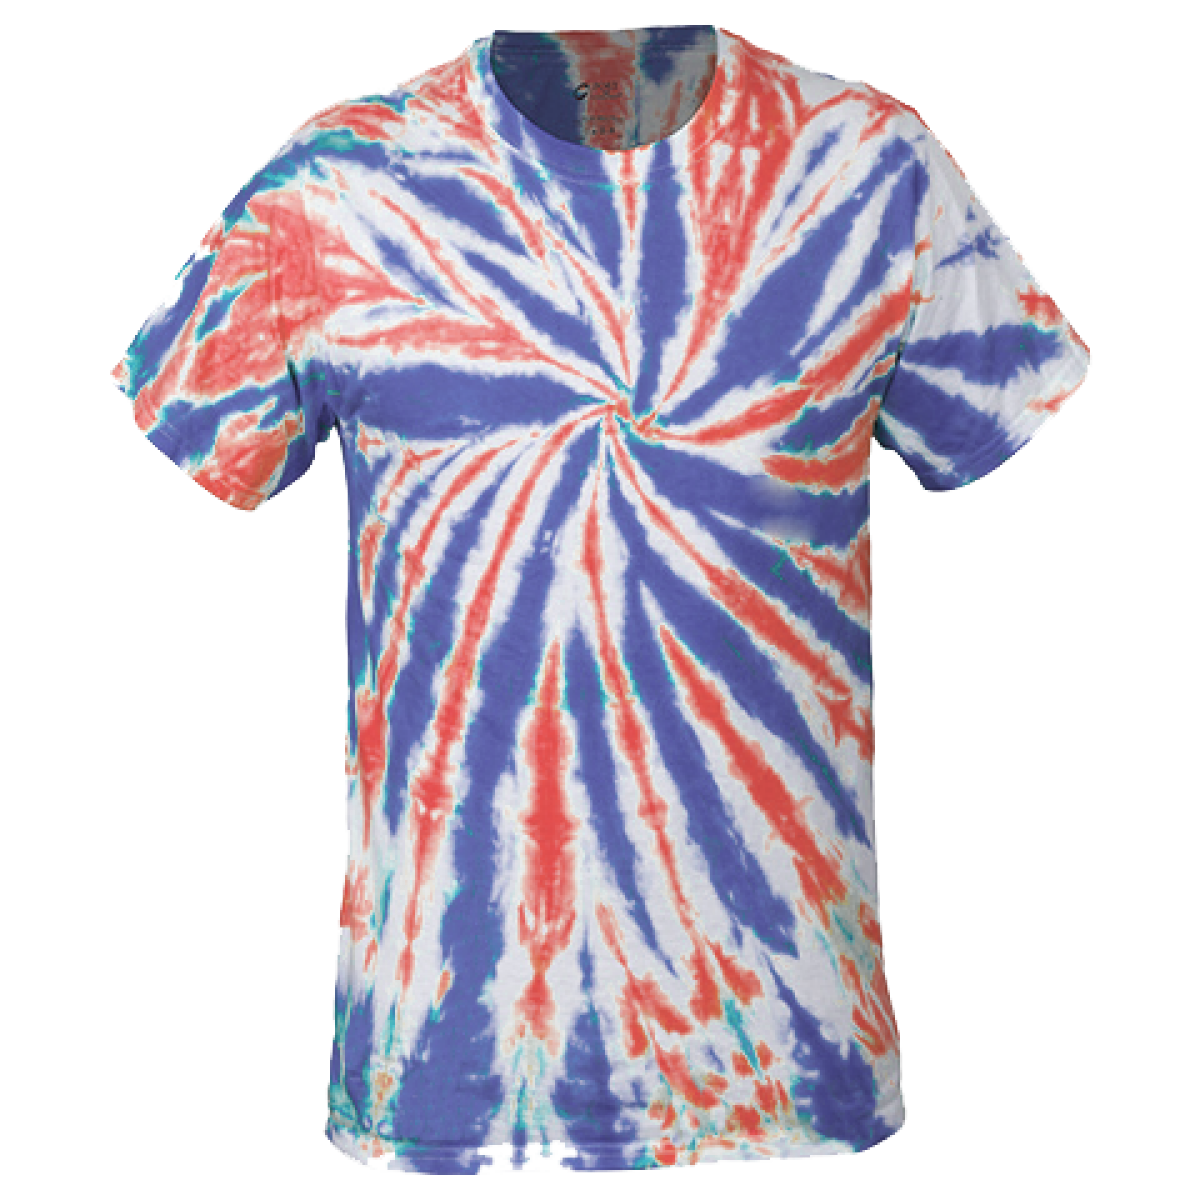 Multi-Color Tie-Dye Tee -Red/White/Blue-YL